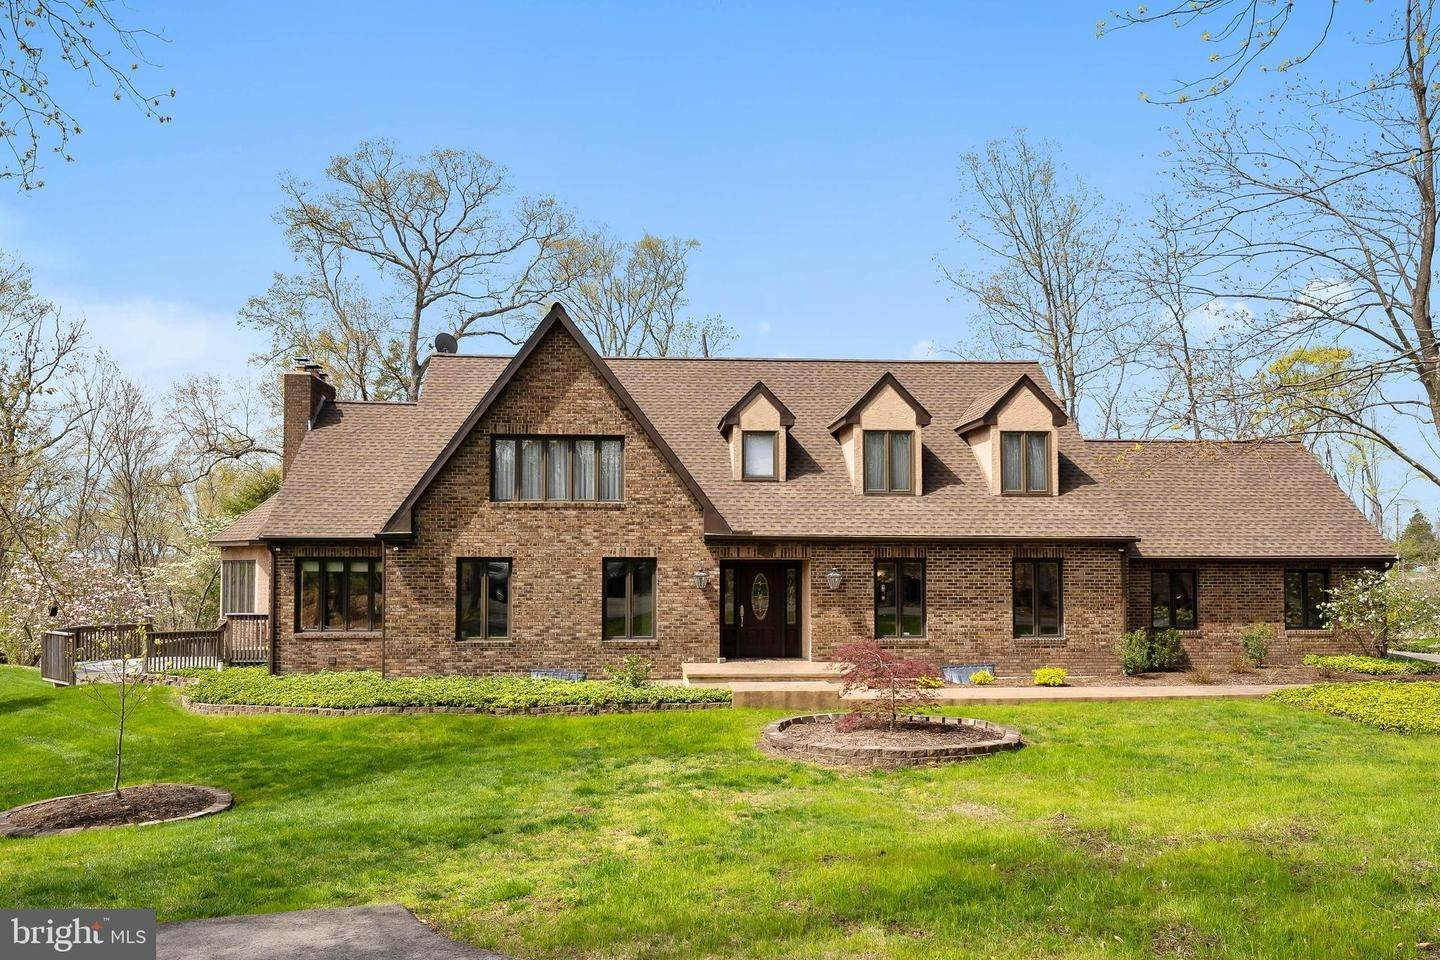 Property for Sale at 2220 HENDRICKS STATION Road Harleysville, Pennsylvania 19438 United States